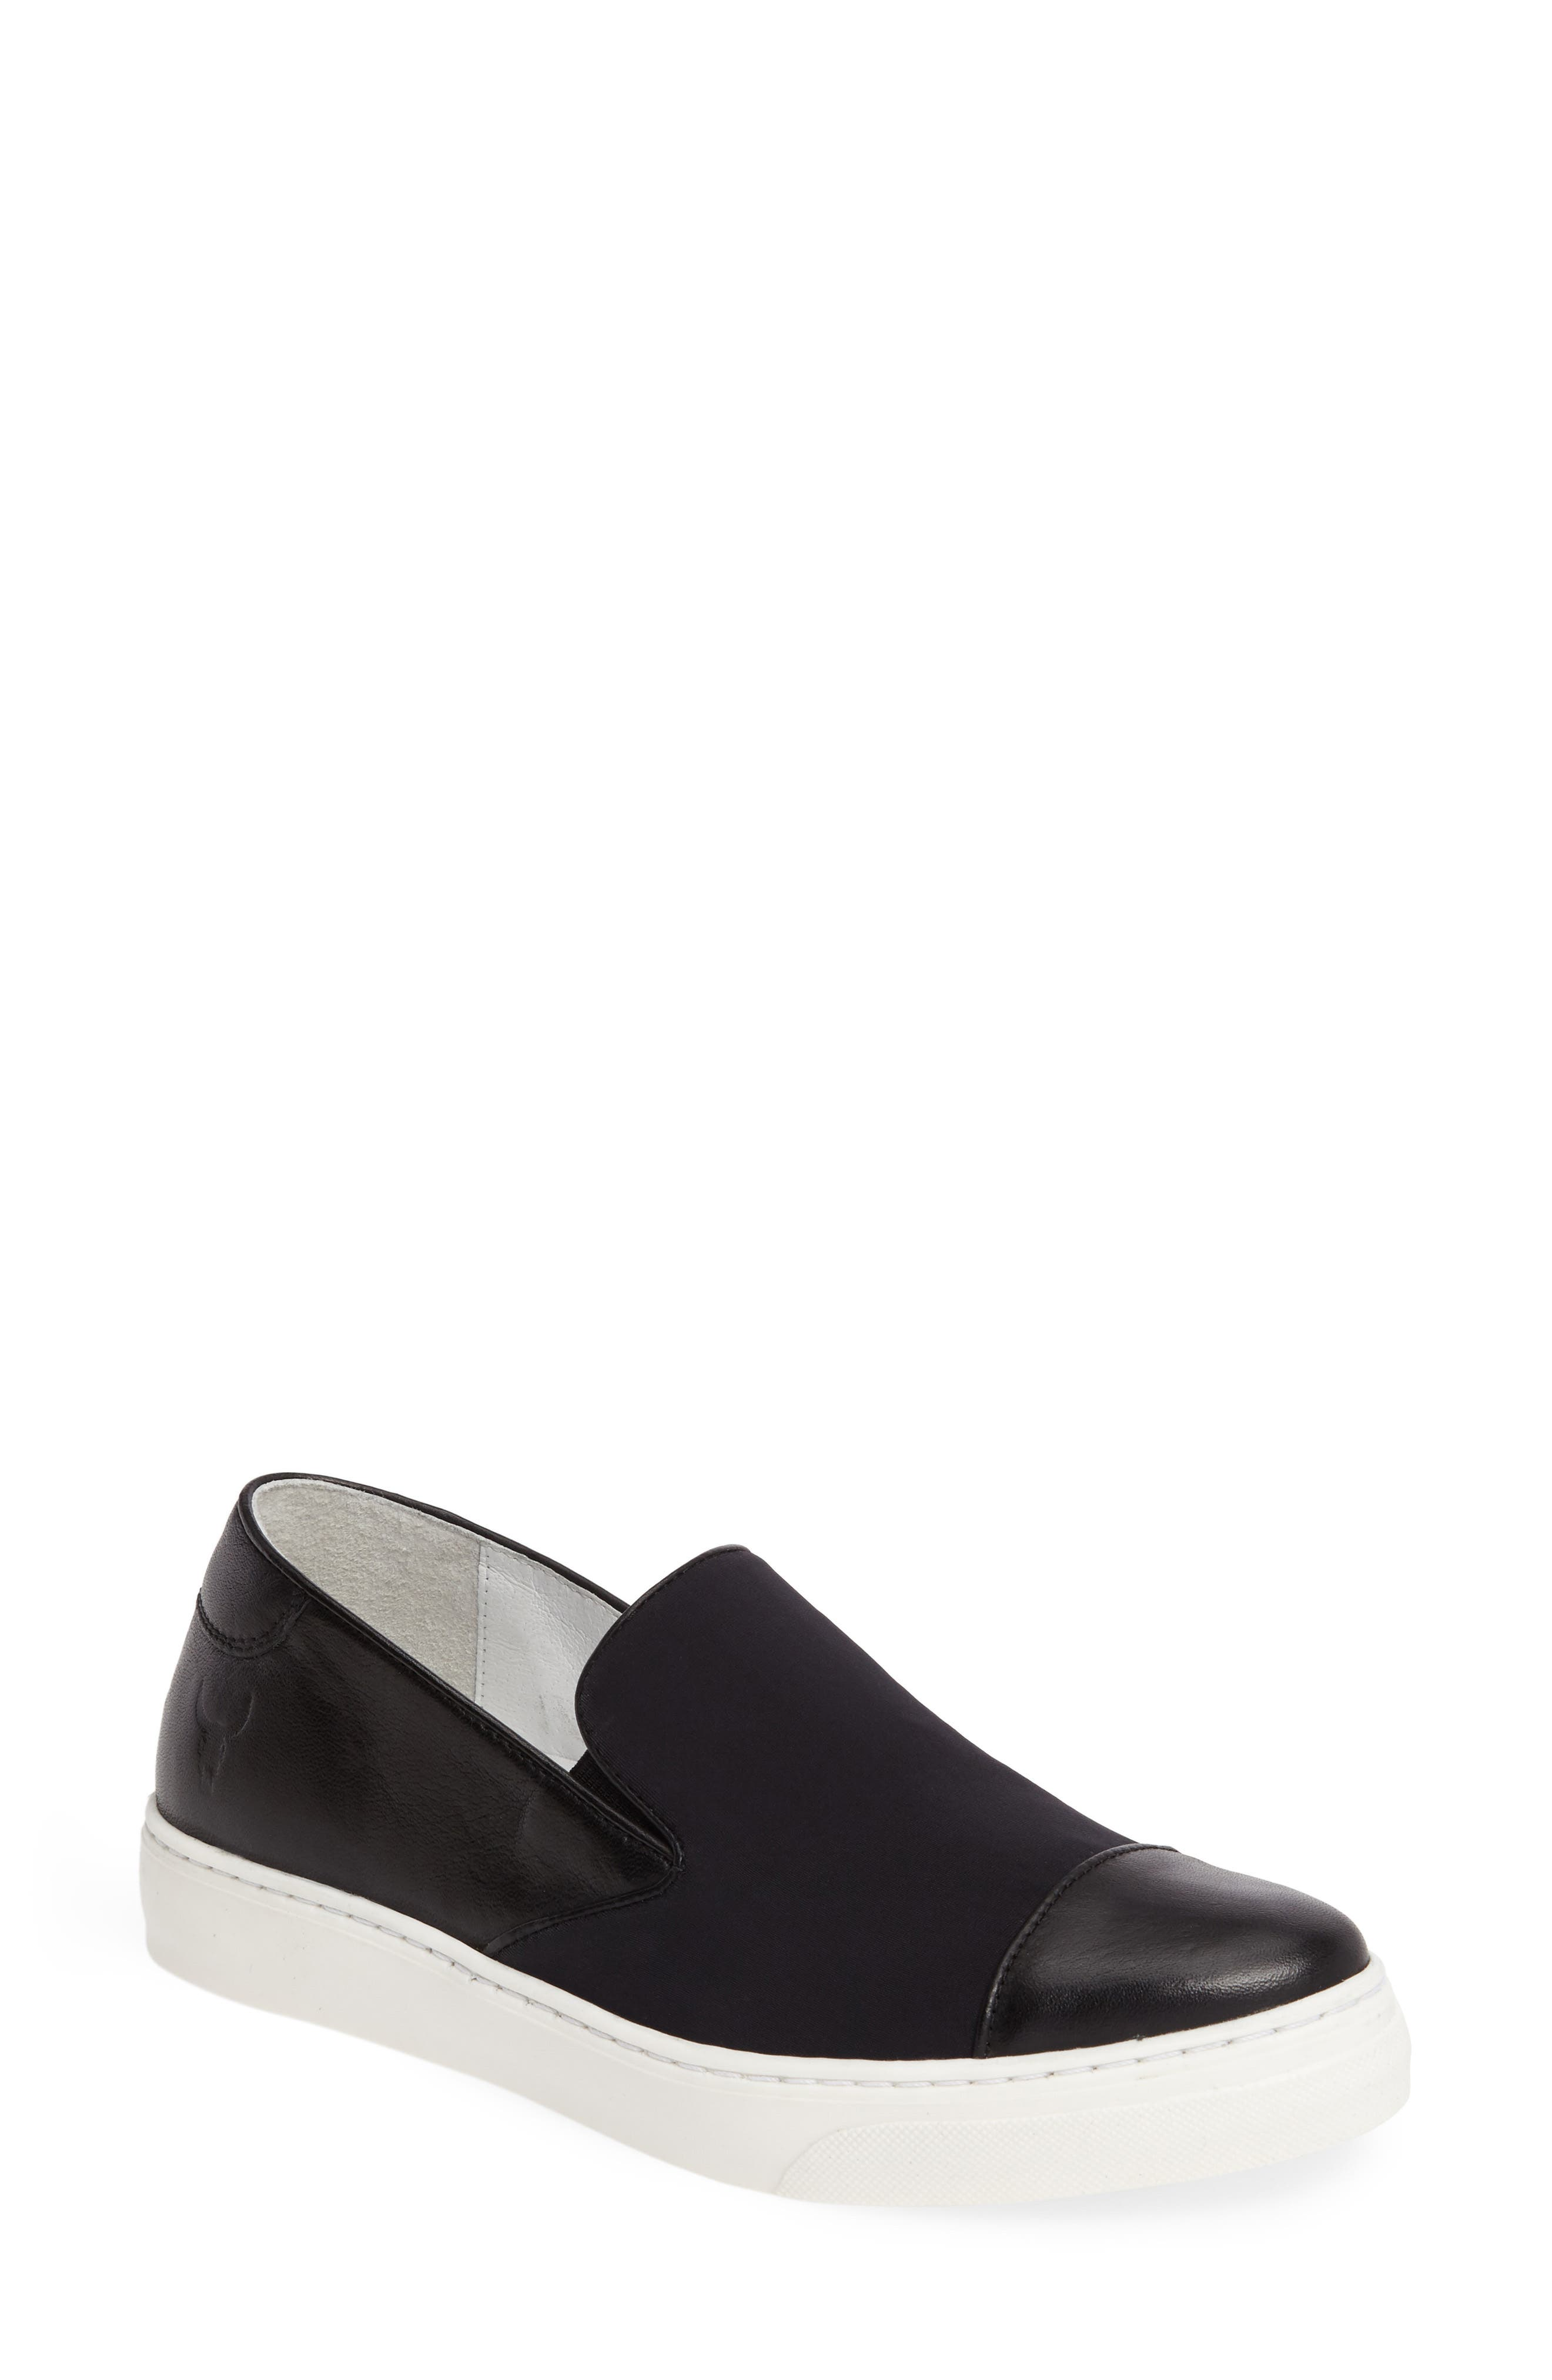 Alternate Image 1 Selected - Rudsak Betsy Slip-On Sneaker (Women)